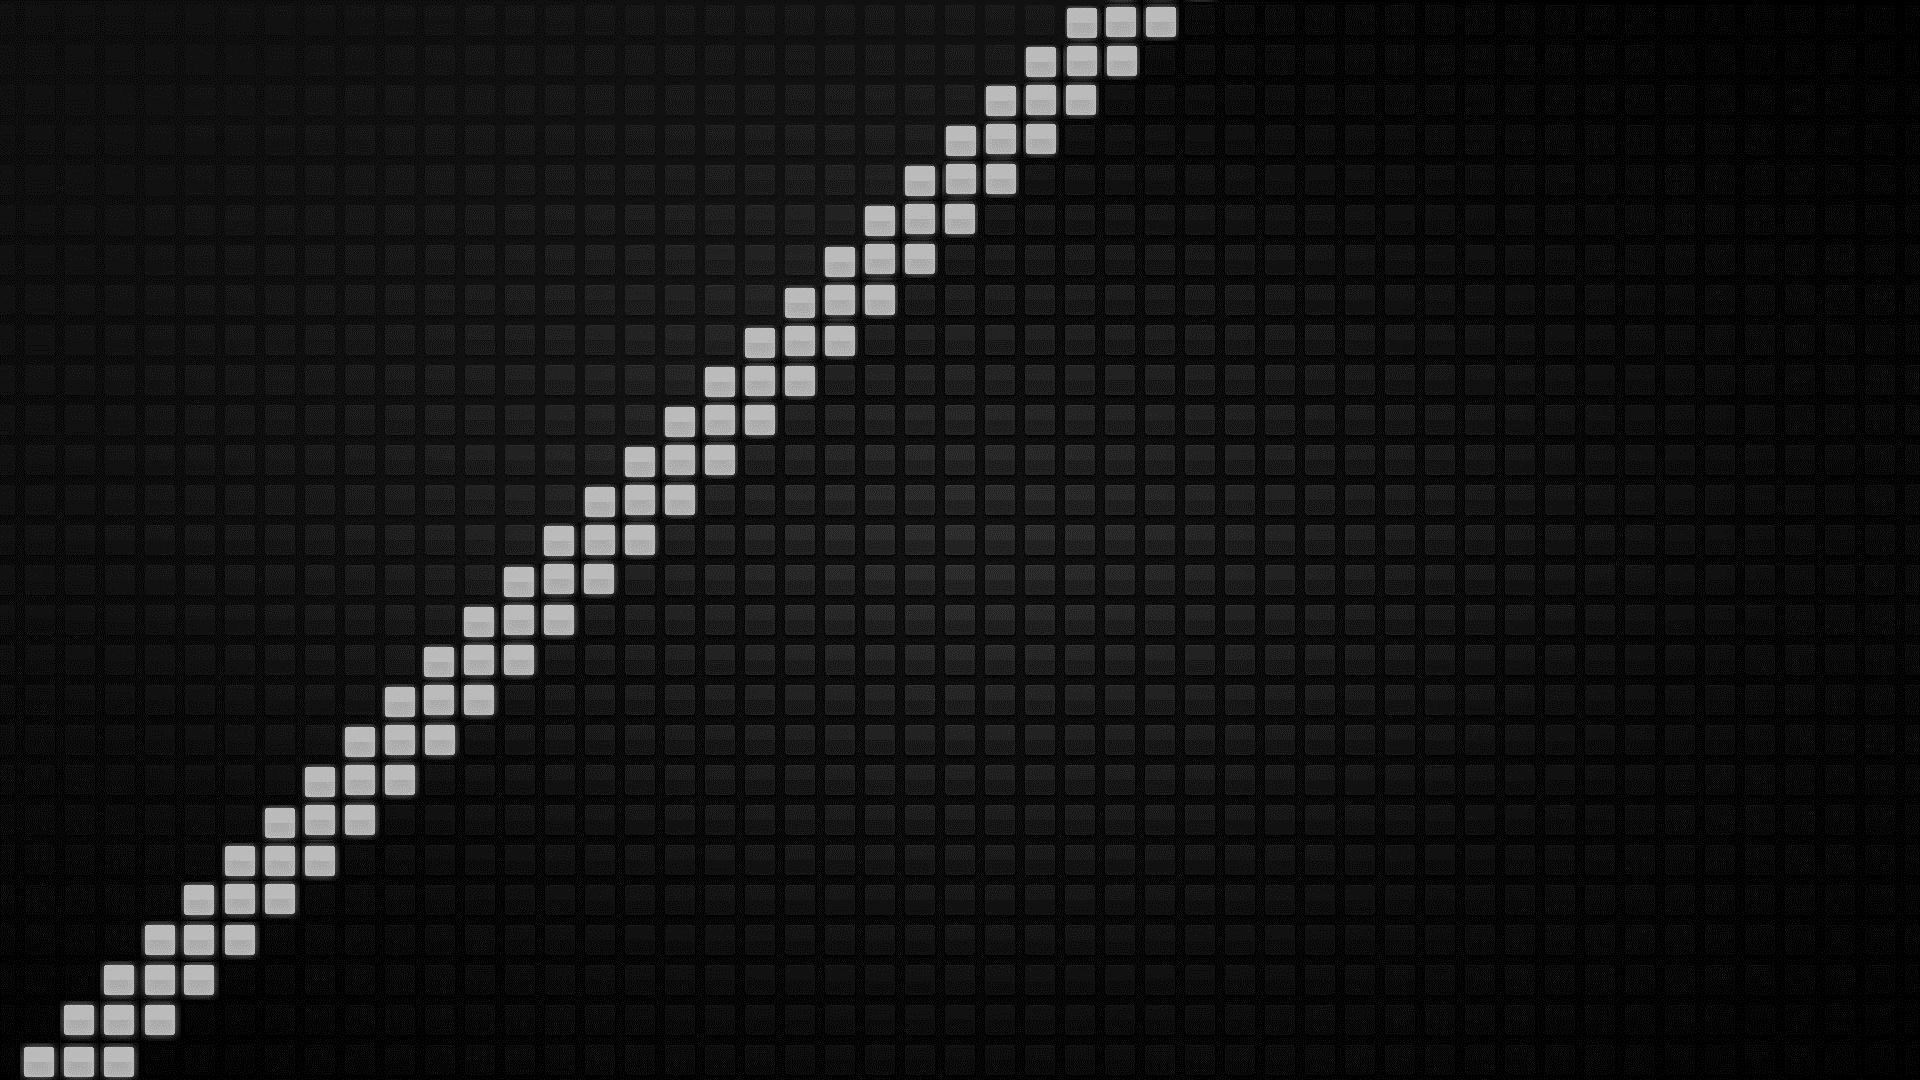 50 Black Wallpaper In FHD For Download For Android 1920x1080